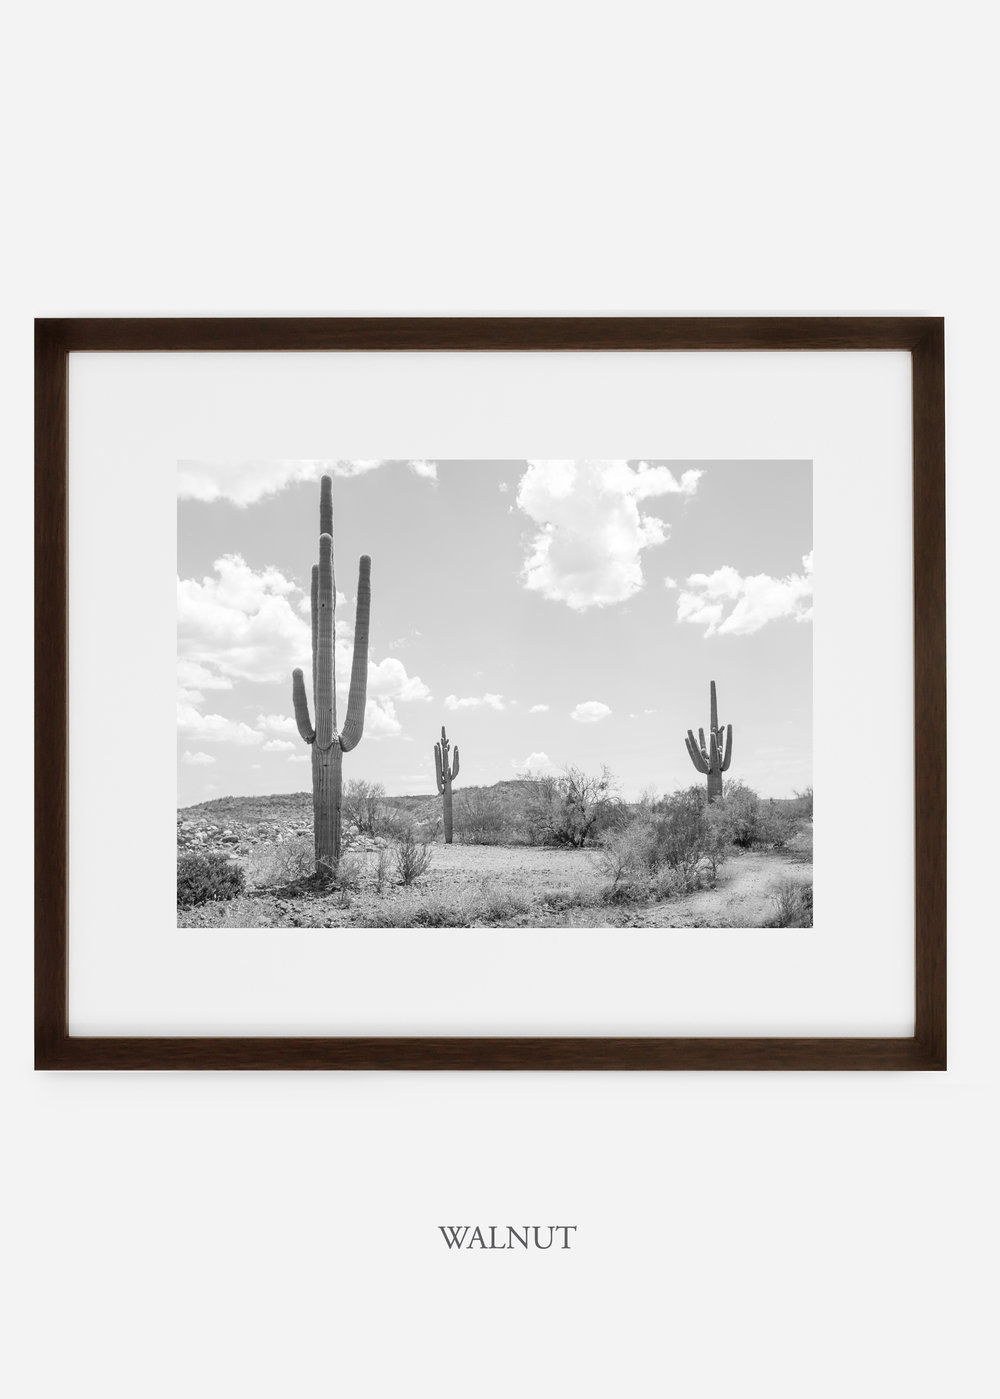 wildercalifornia_walnutframe_threesaguaro_cactus_art_interiordesign.jpg